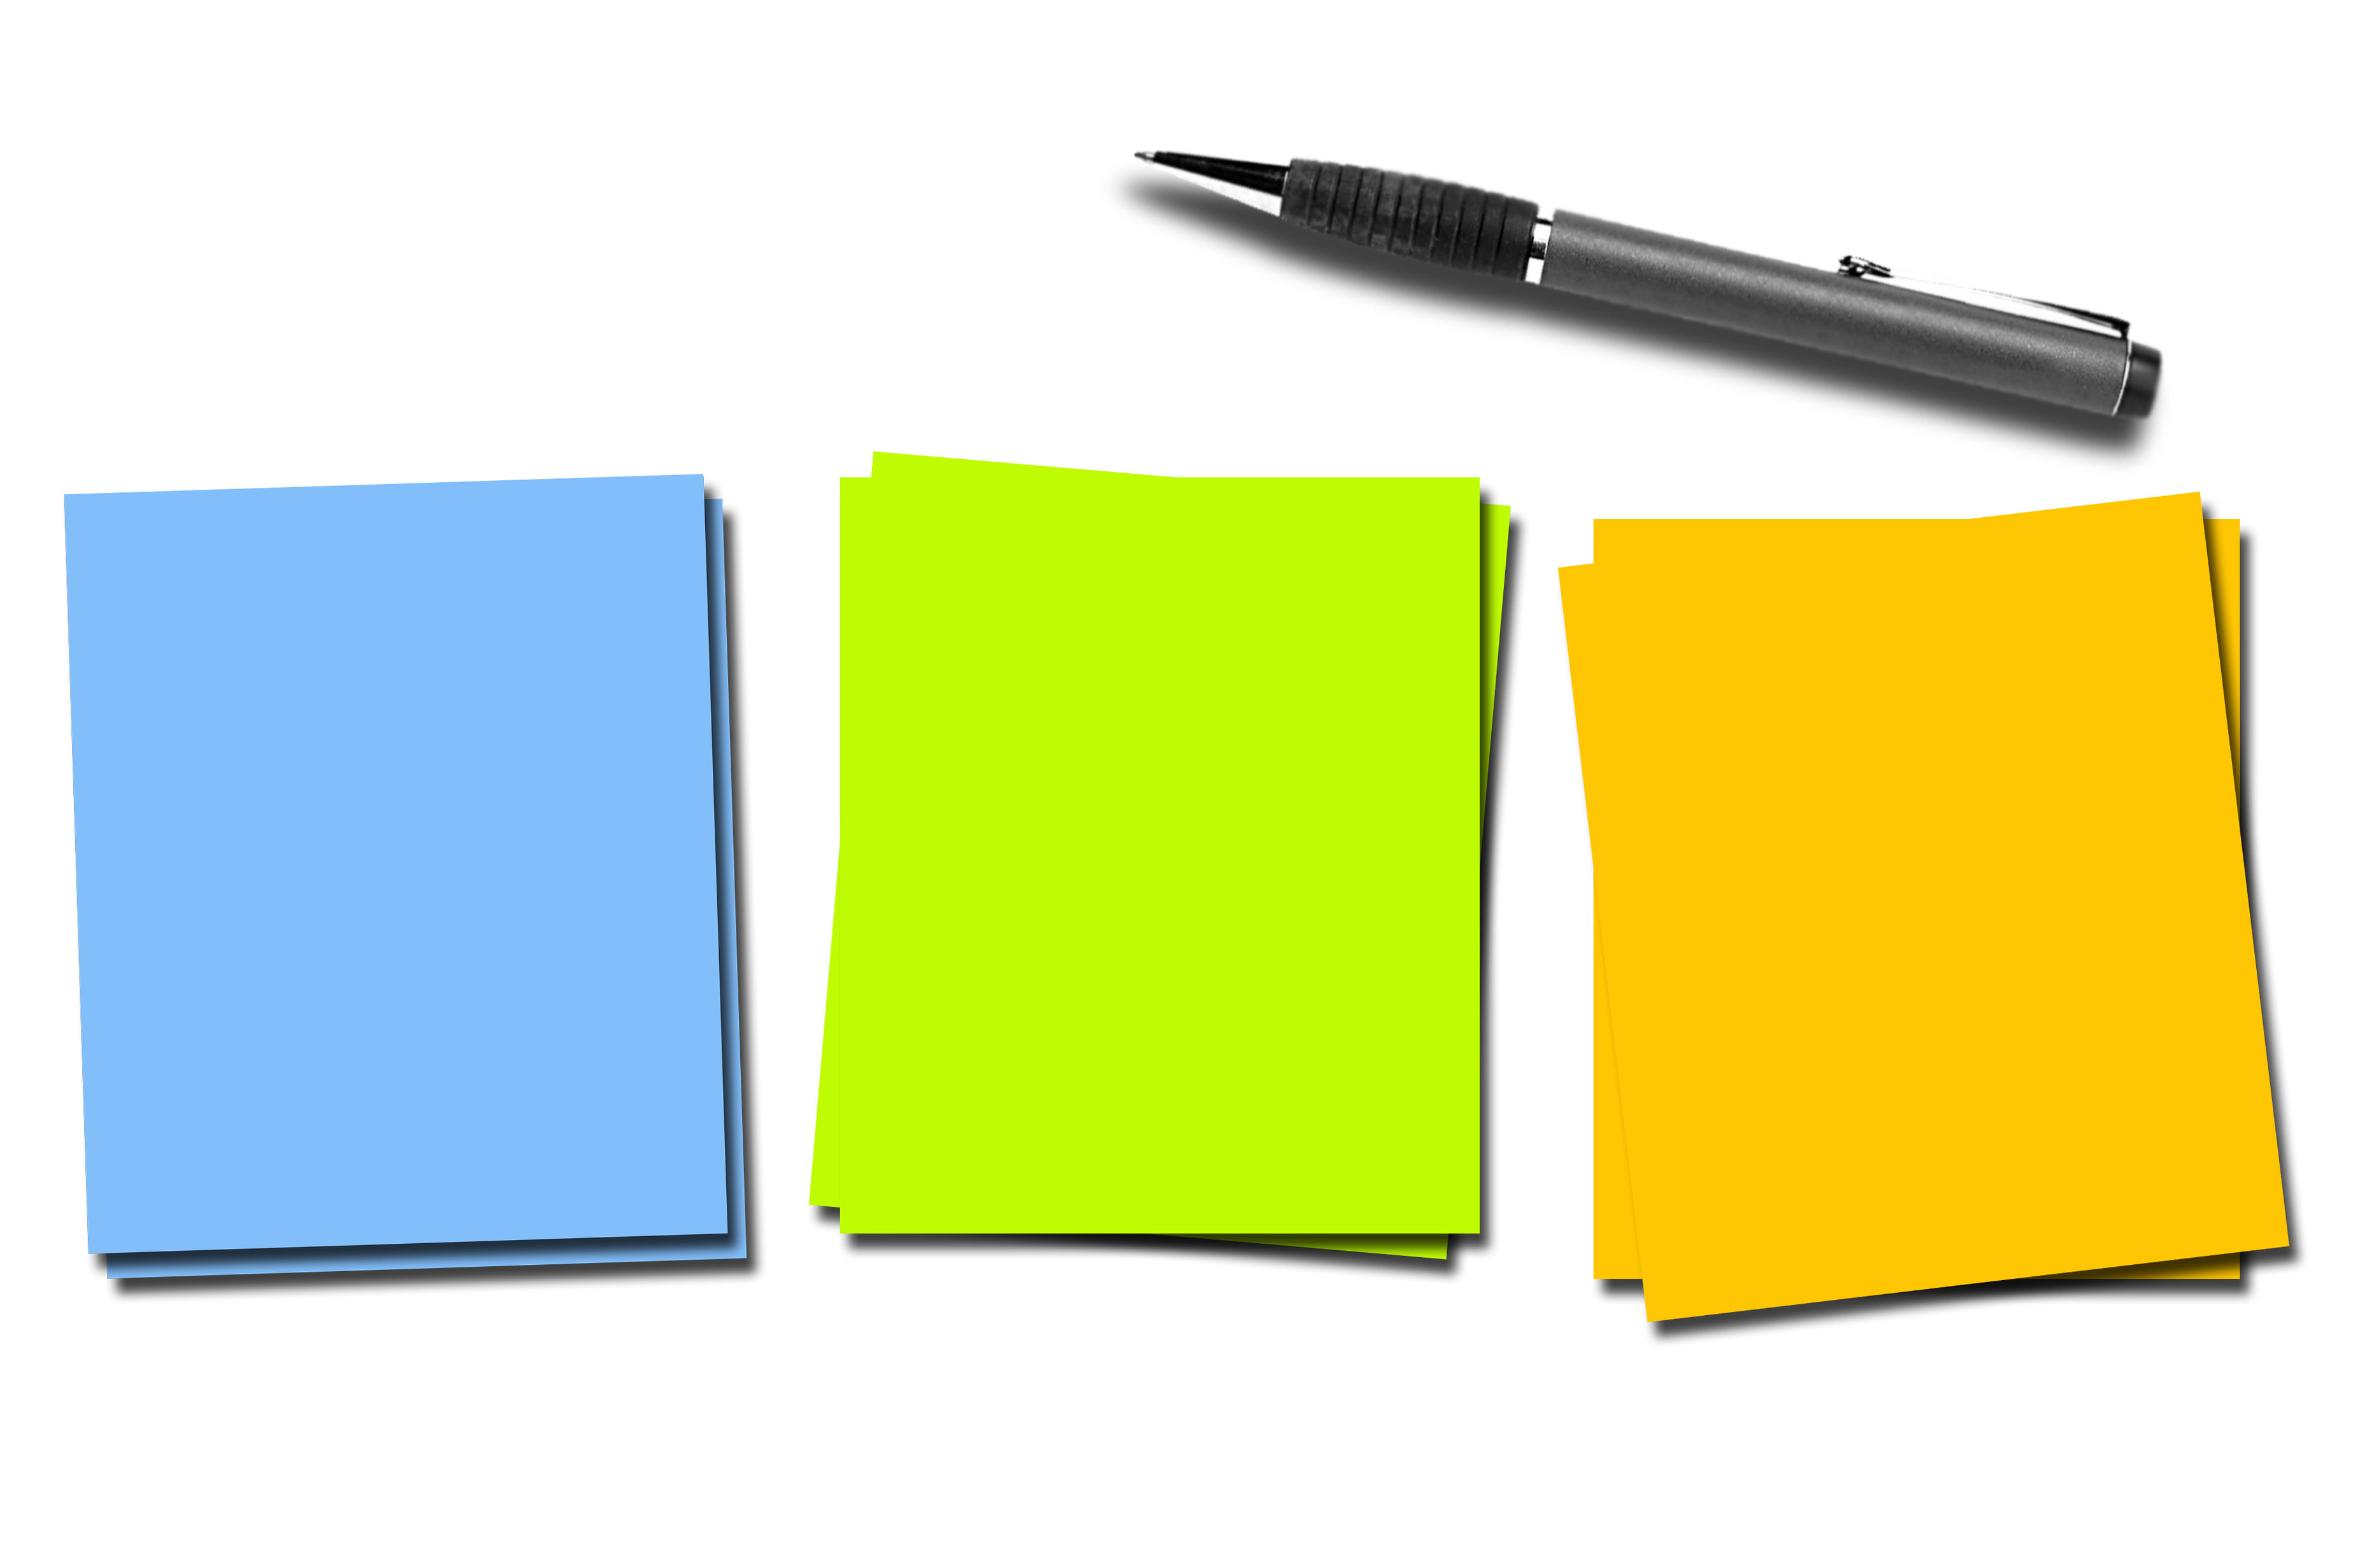 Free Post It Note Png, Download Free Clip Art, Free Clip Art on Clipart  Library